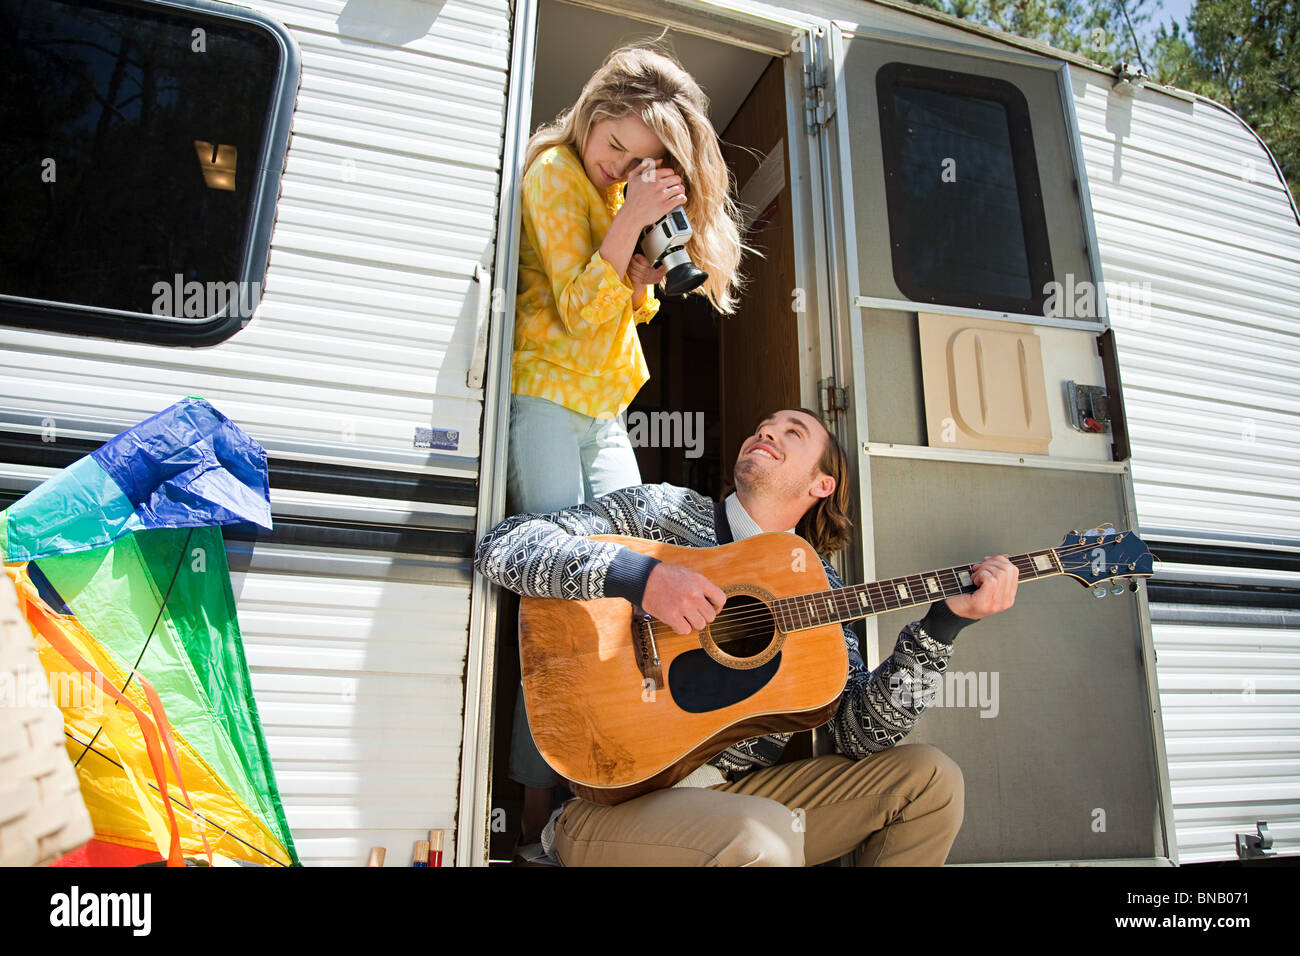 Young woman filming boyfriend playing the guitar - Stock Image